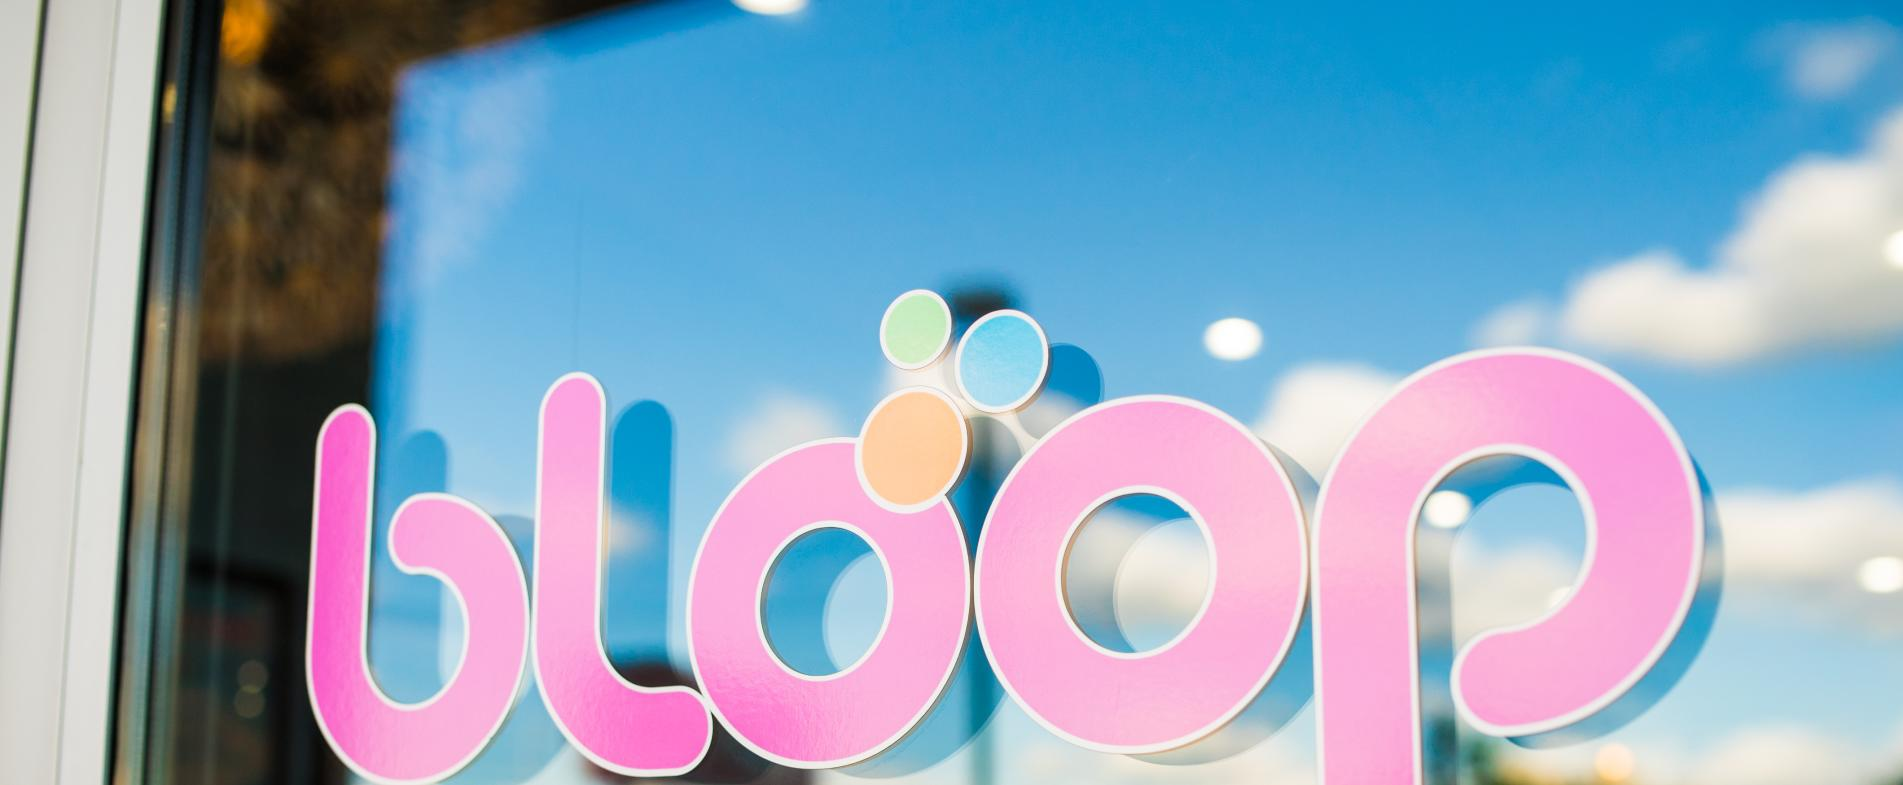 Stay tuned for more information on Bloop Frozen Yogurt delivery services.